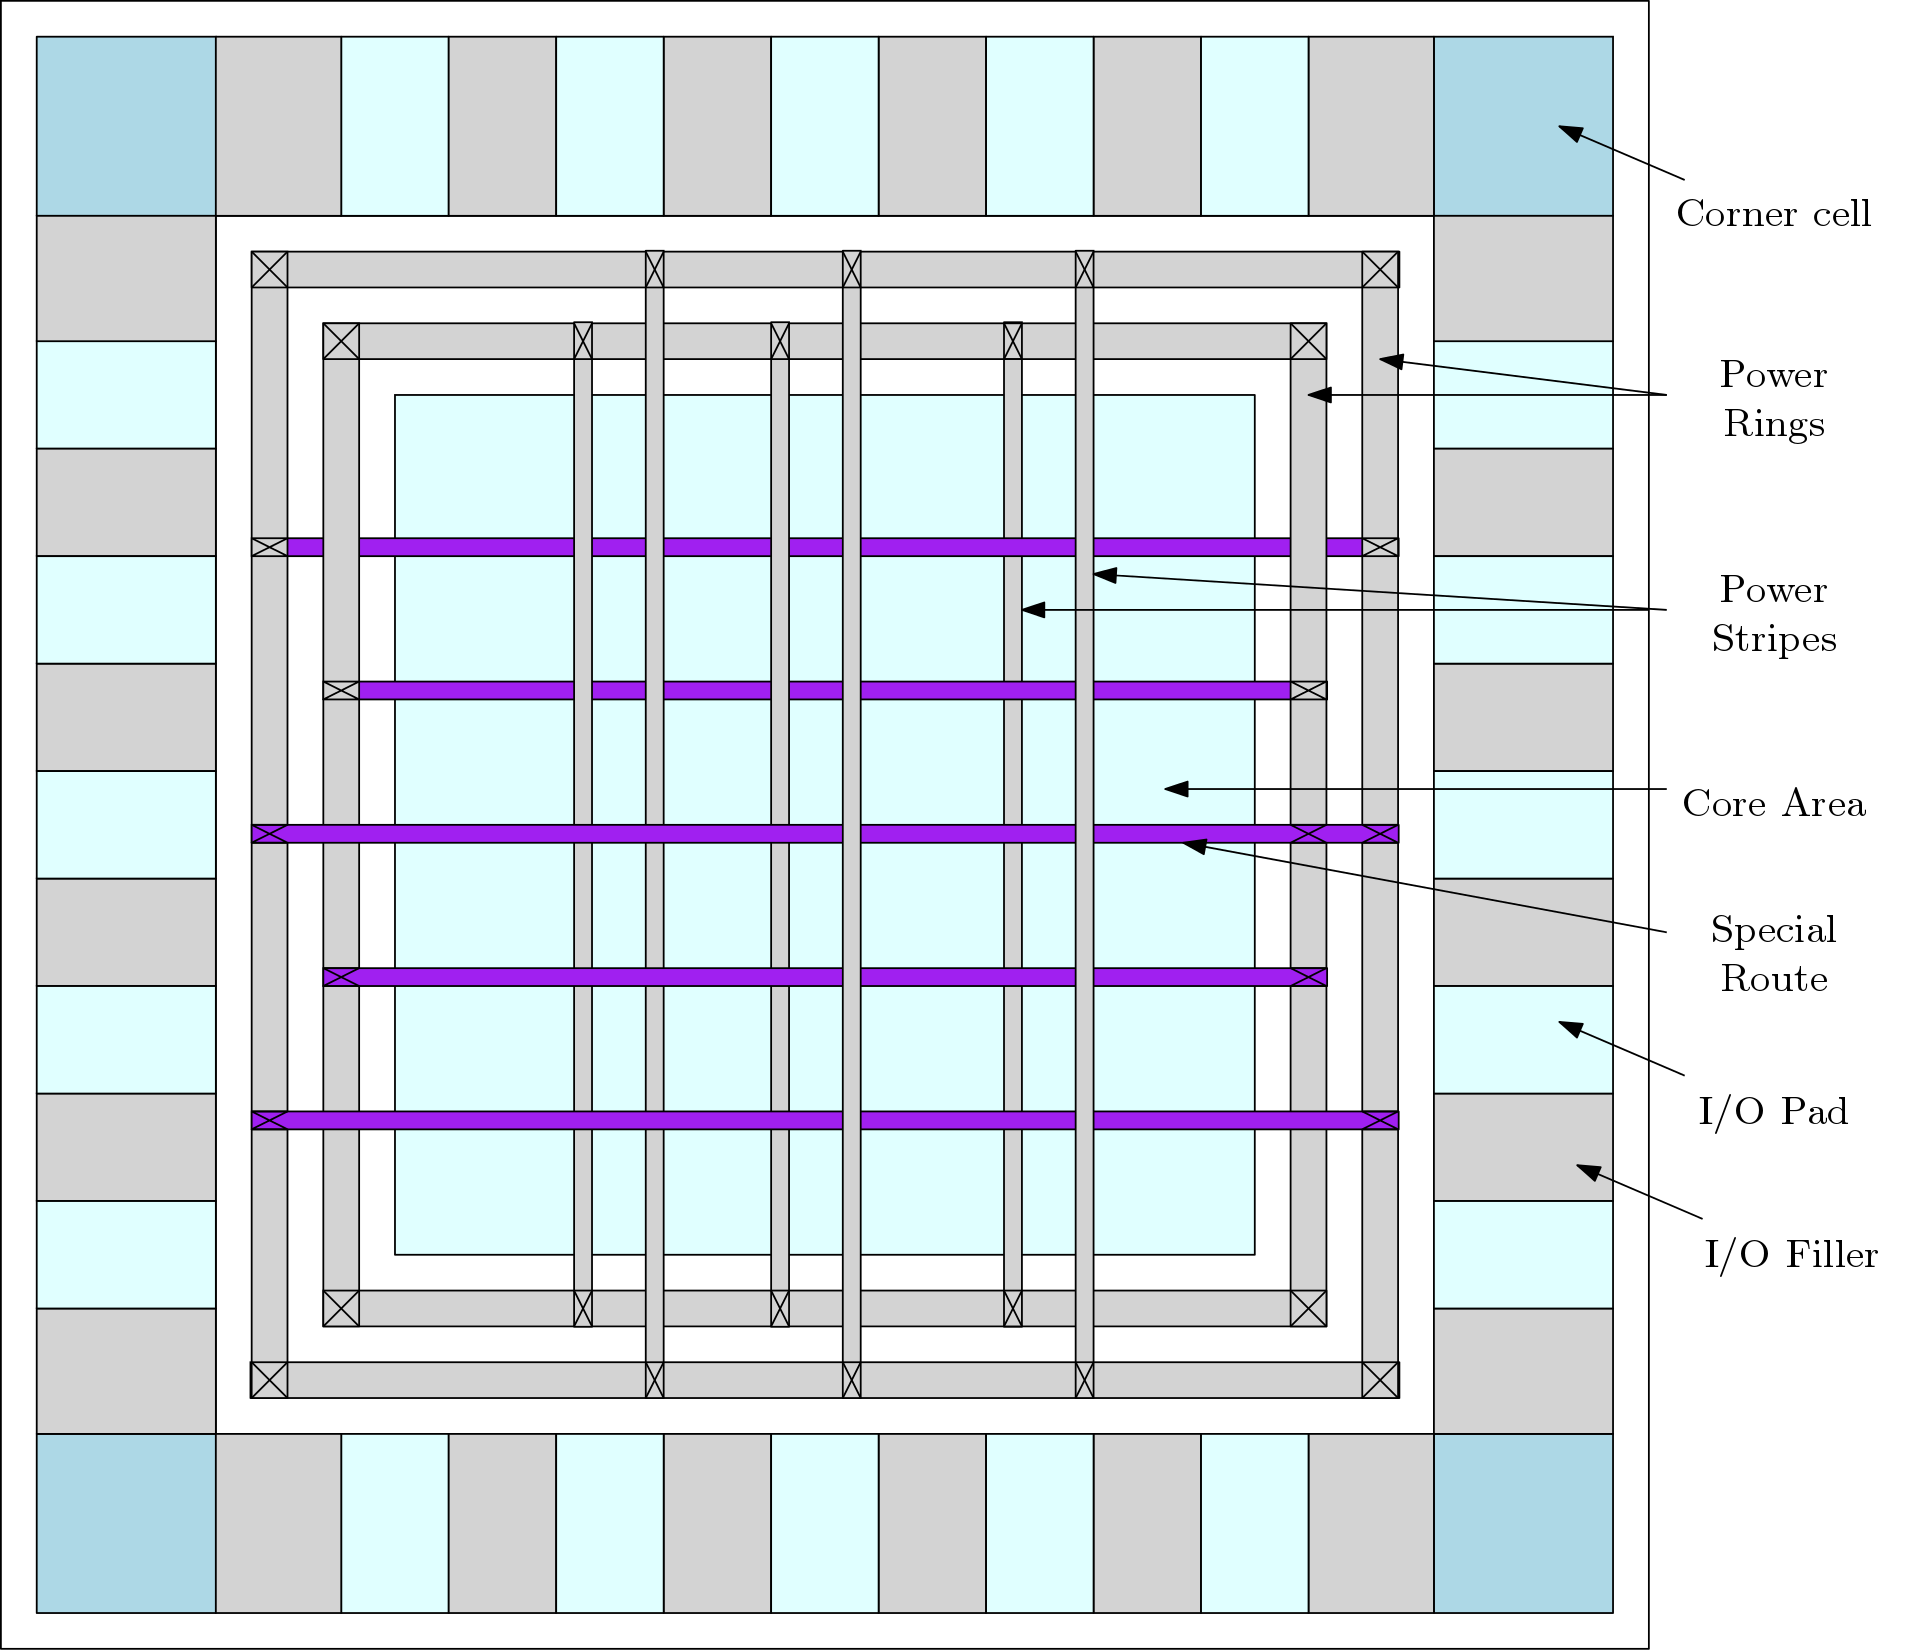 A simplified floor plan for the ASIC Chip